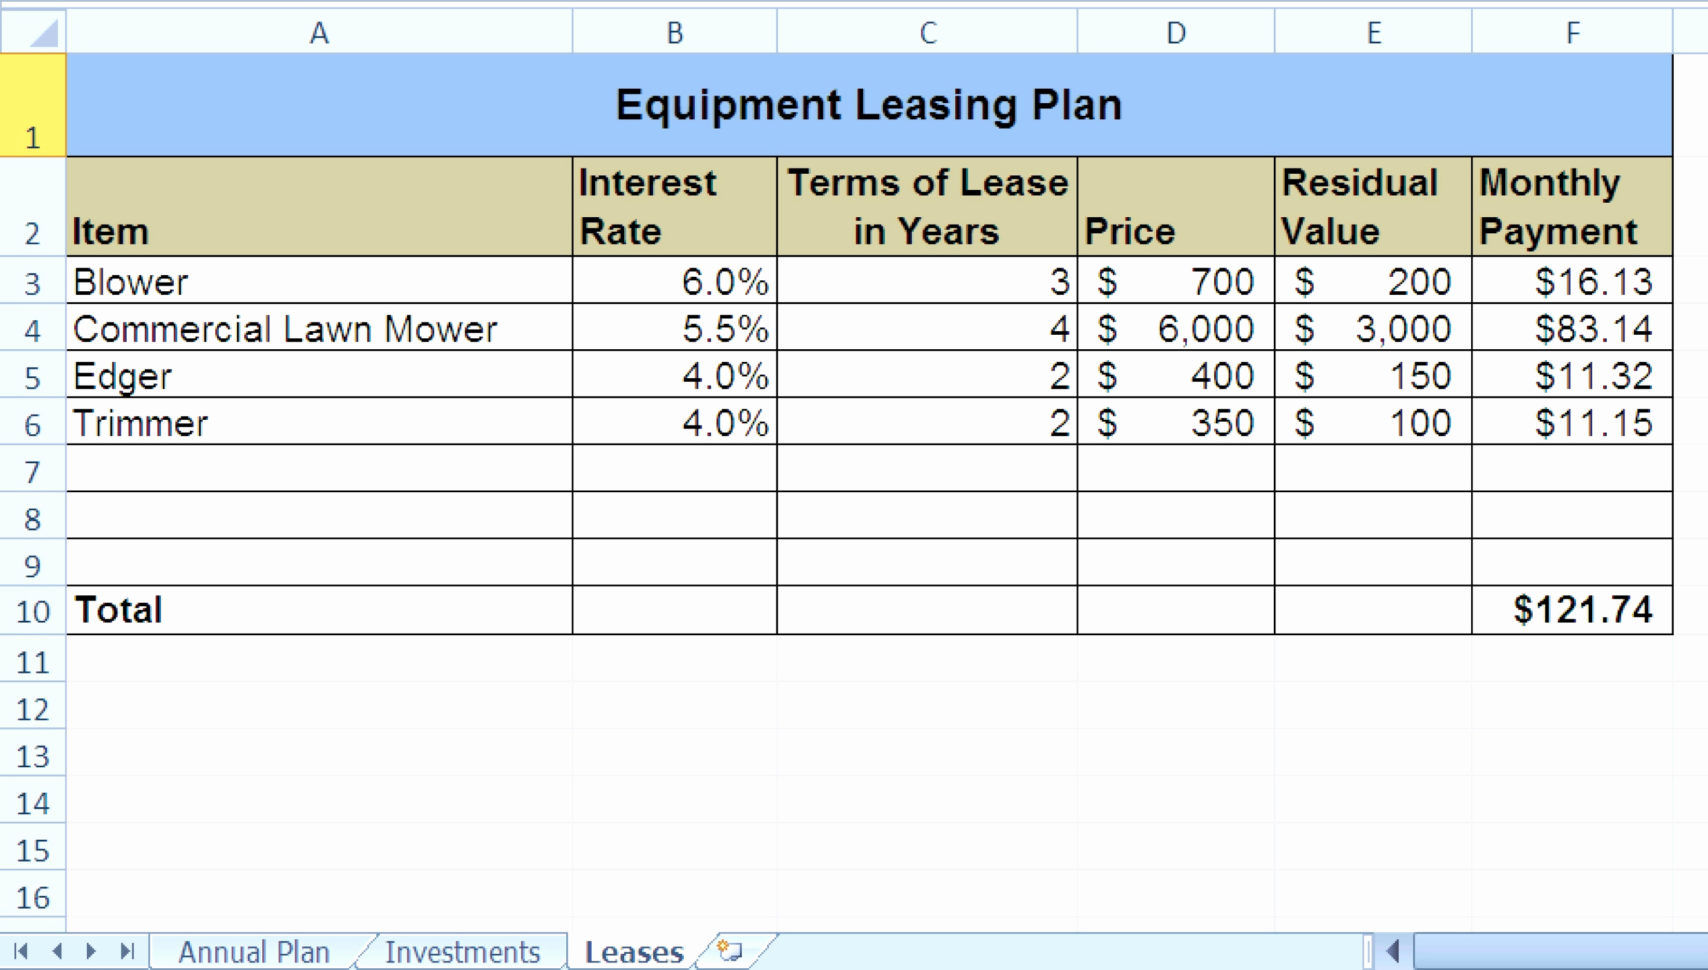 Investment Calculator Spreadsheet Regarding Real Estate Investment Calculator Spreadsheet For Real Estate